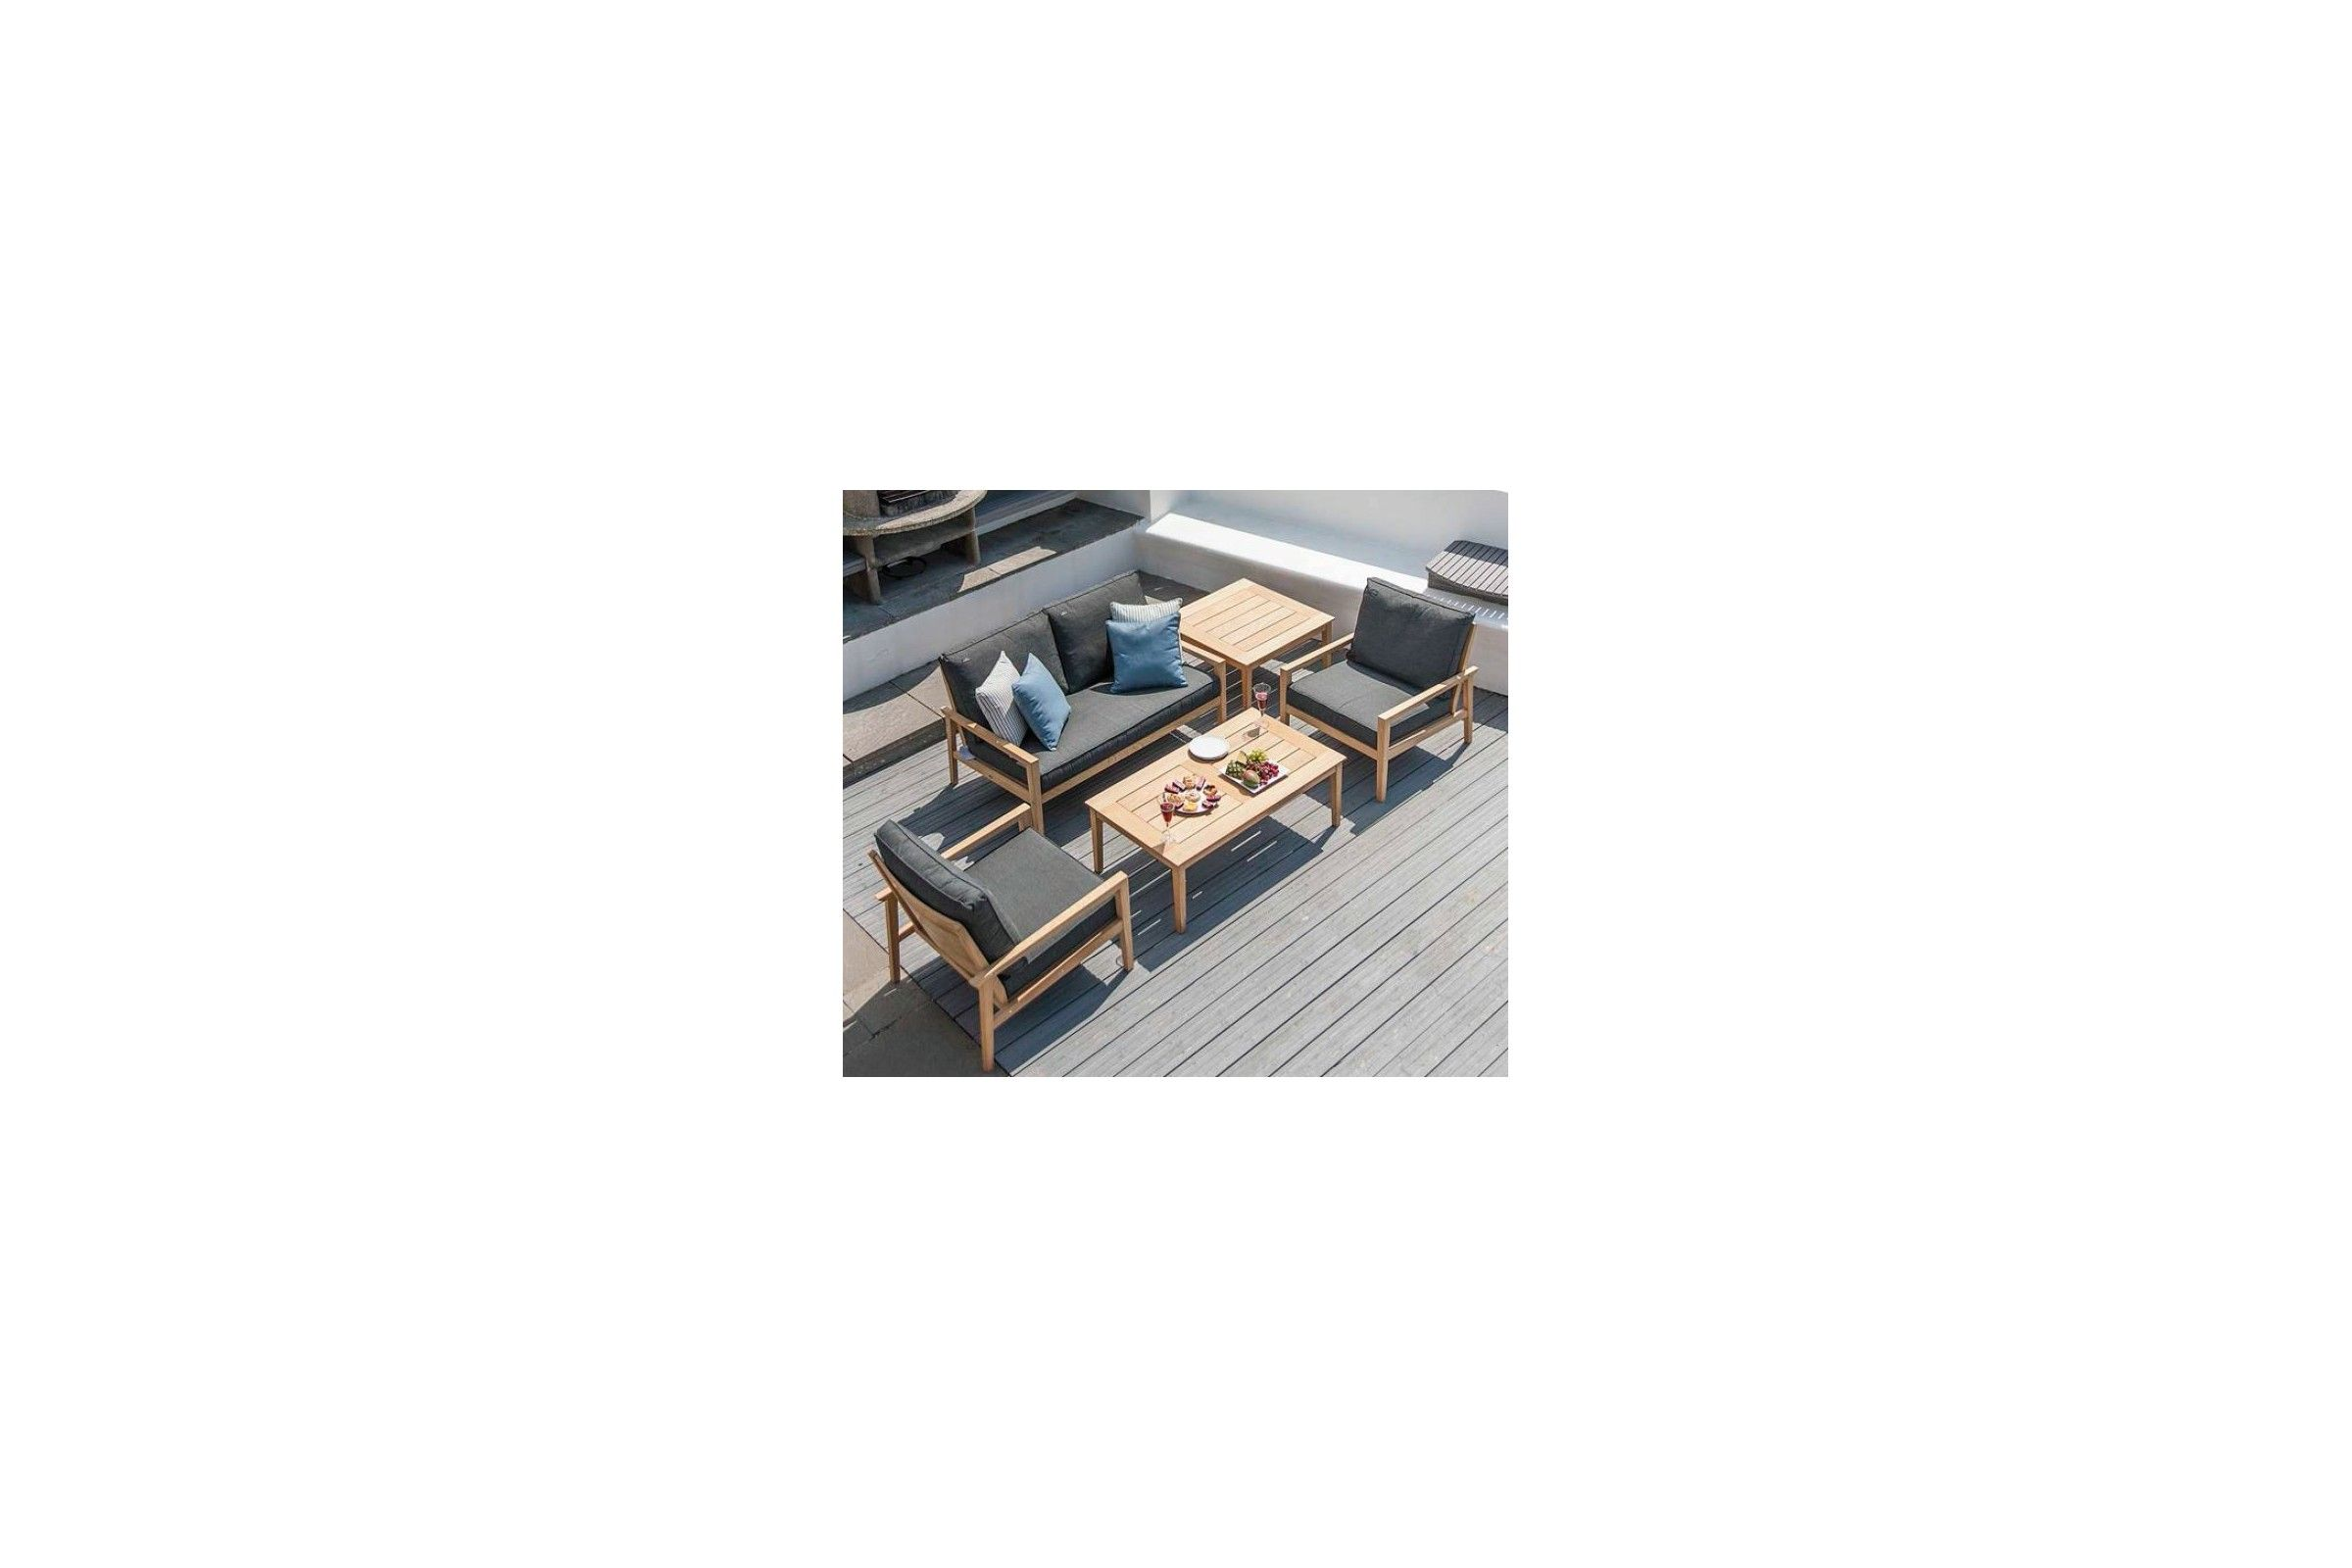 canap lounge pour salon de jardin en bois avec coussin. Black Bedroom Furniture Sets. Home Design Ideas